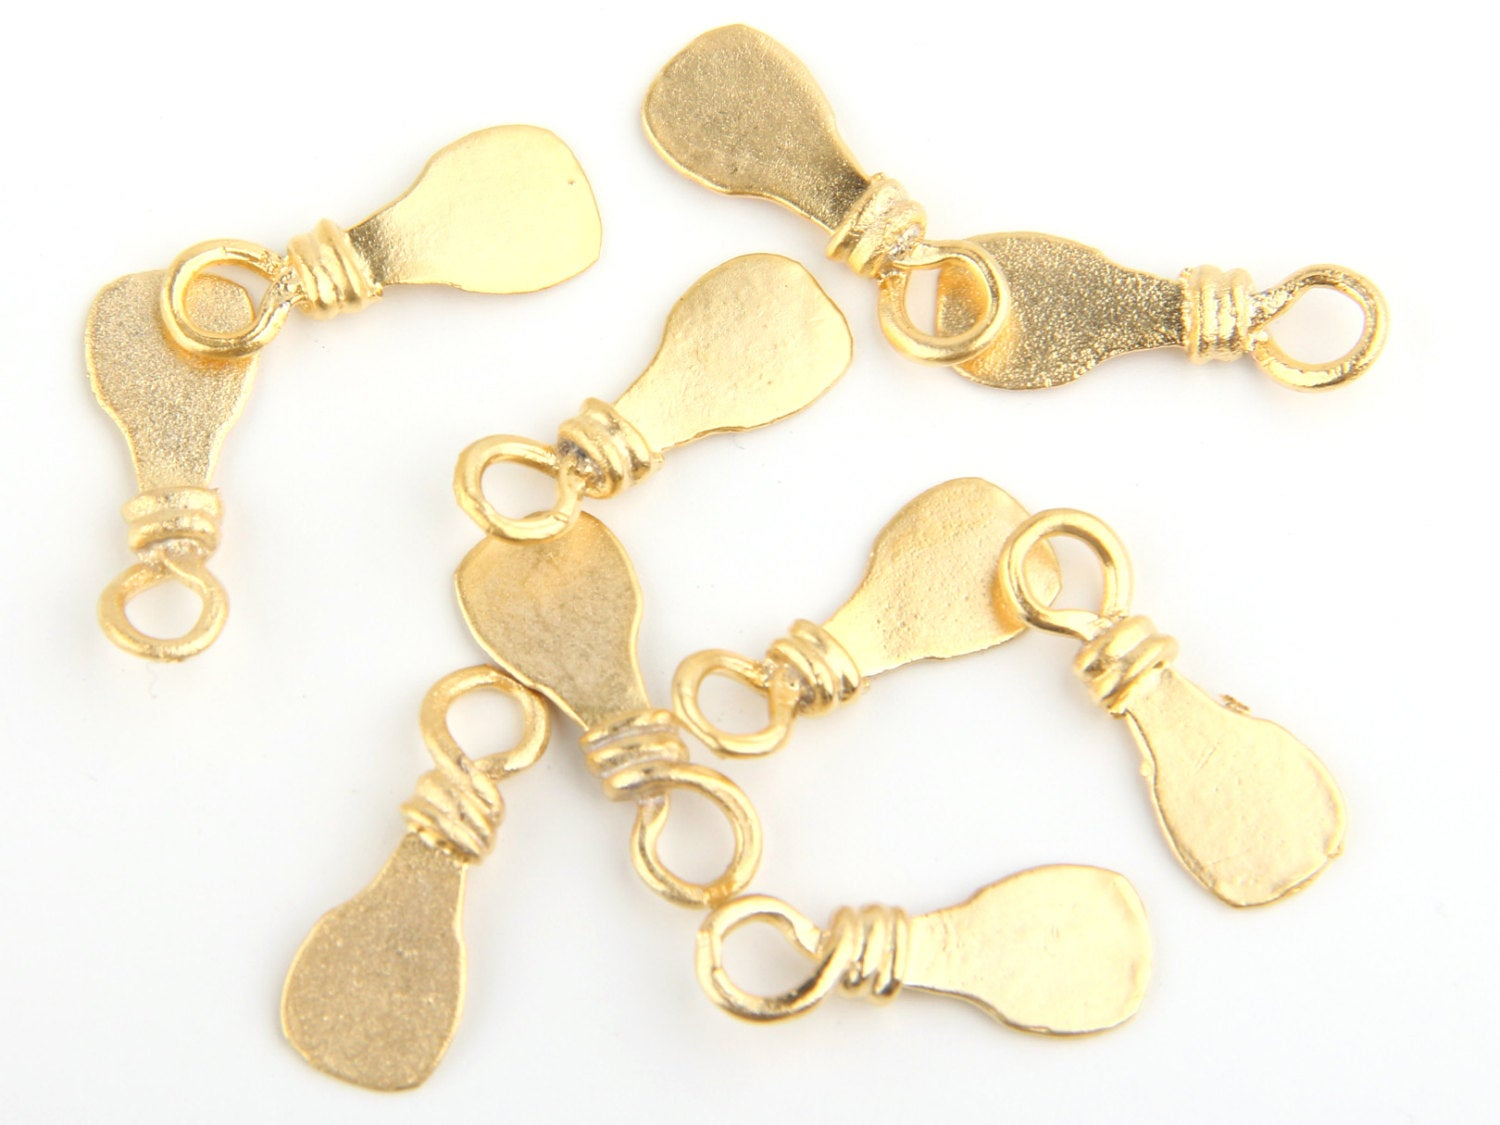 Gold Flat Paddle Charms, 22k Matte Gold Plated, 10 pcs // GCh-189